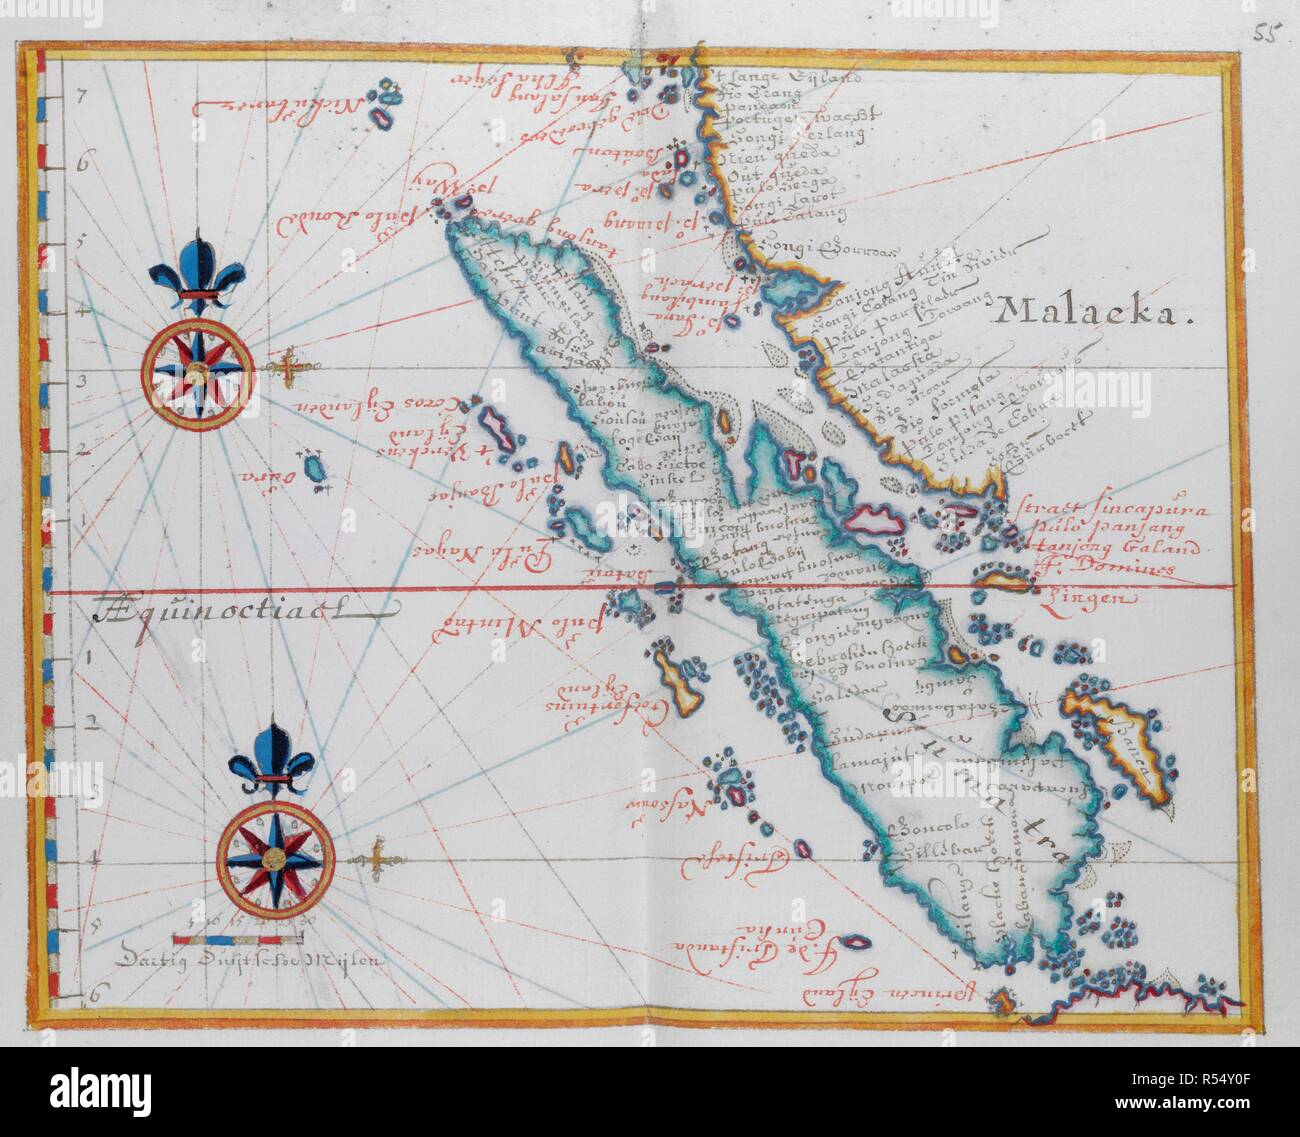 Map Showing Malacca And Sumatra Western Indonesia Part Of The